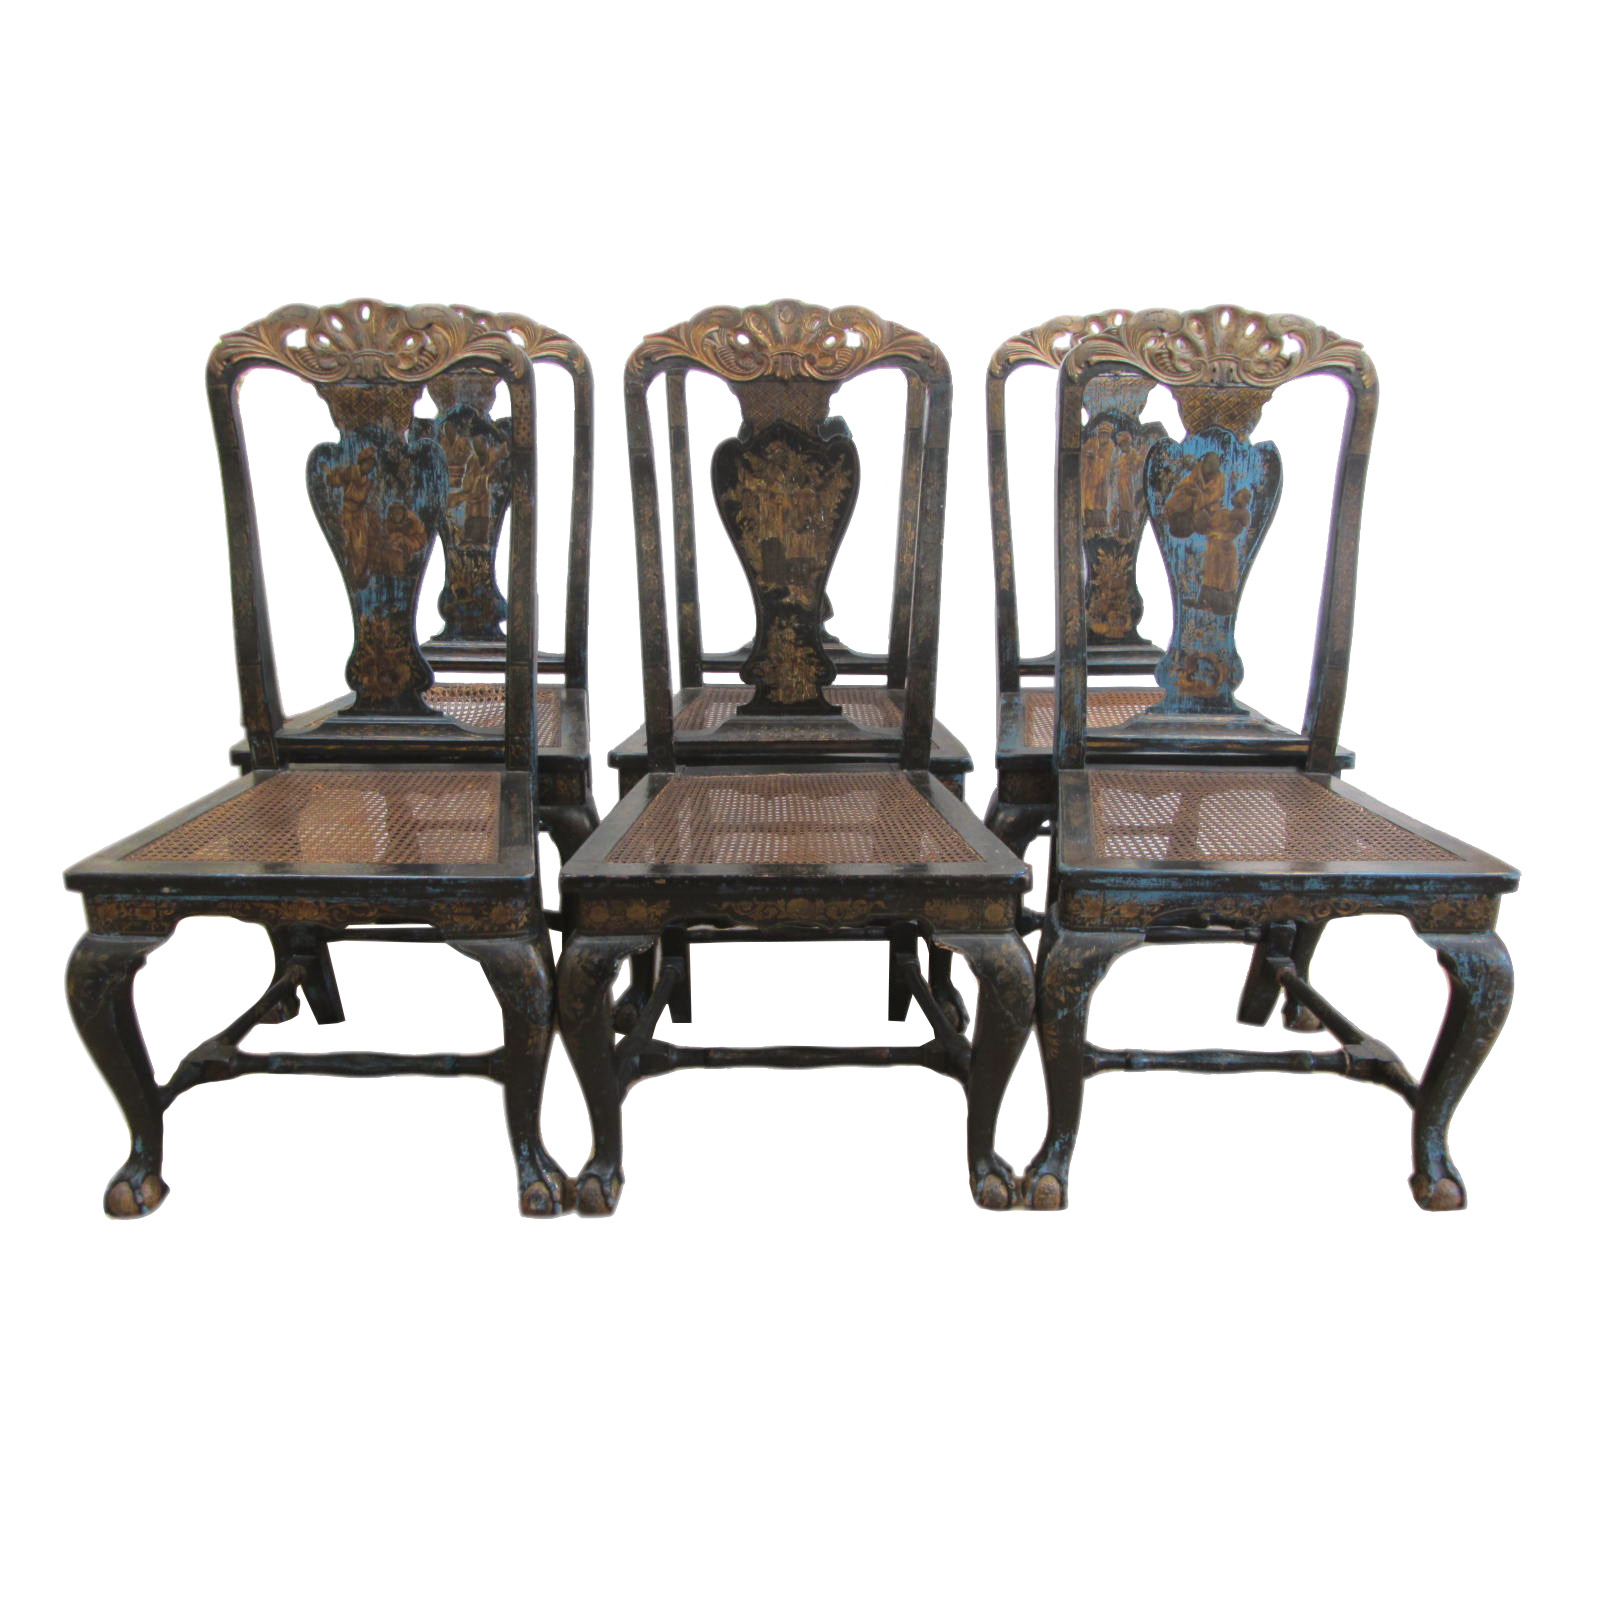 Antique Chinese Chippendale Chairs Set Of 6 Chairish